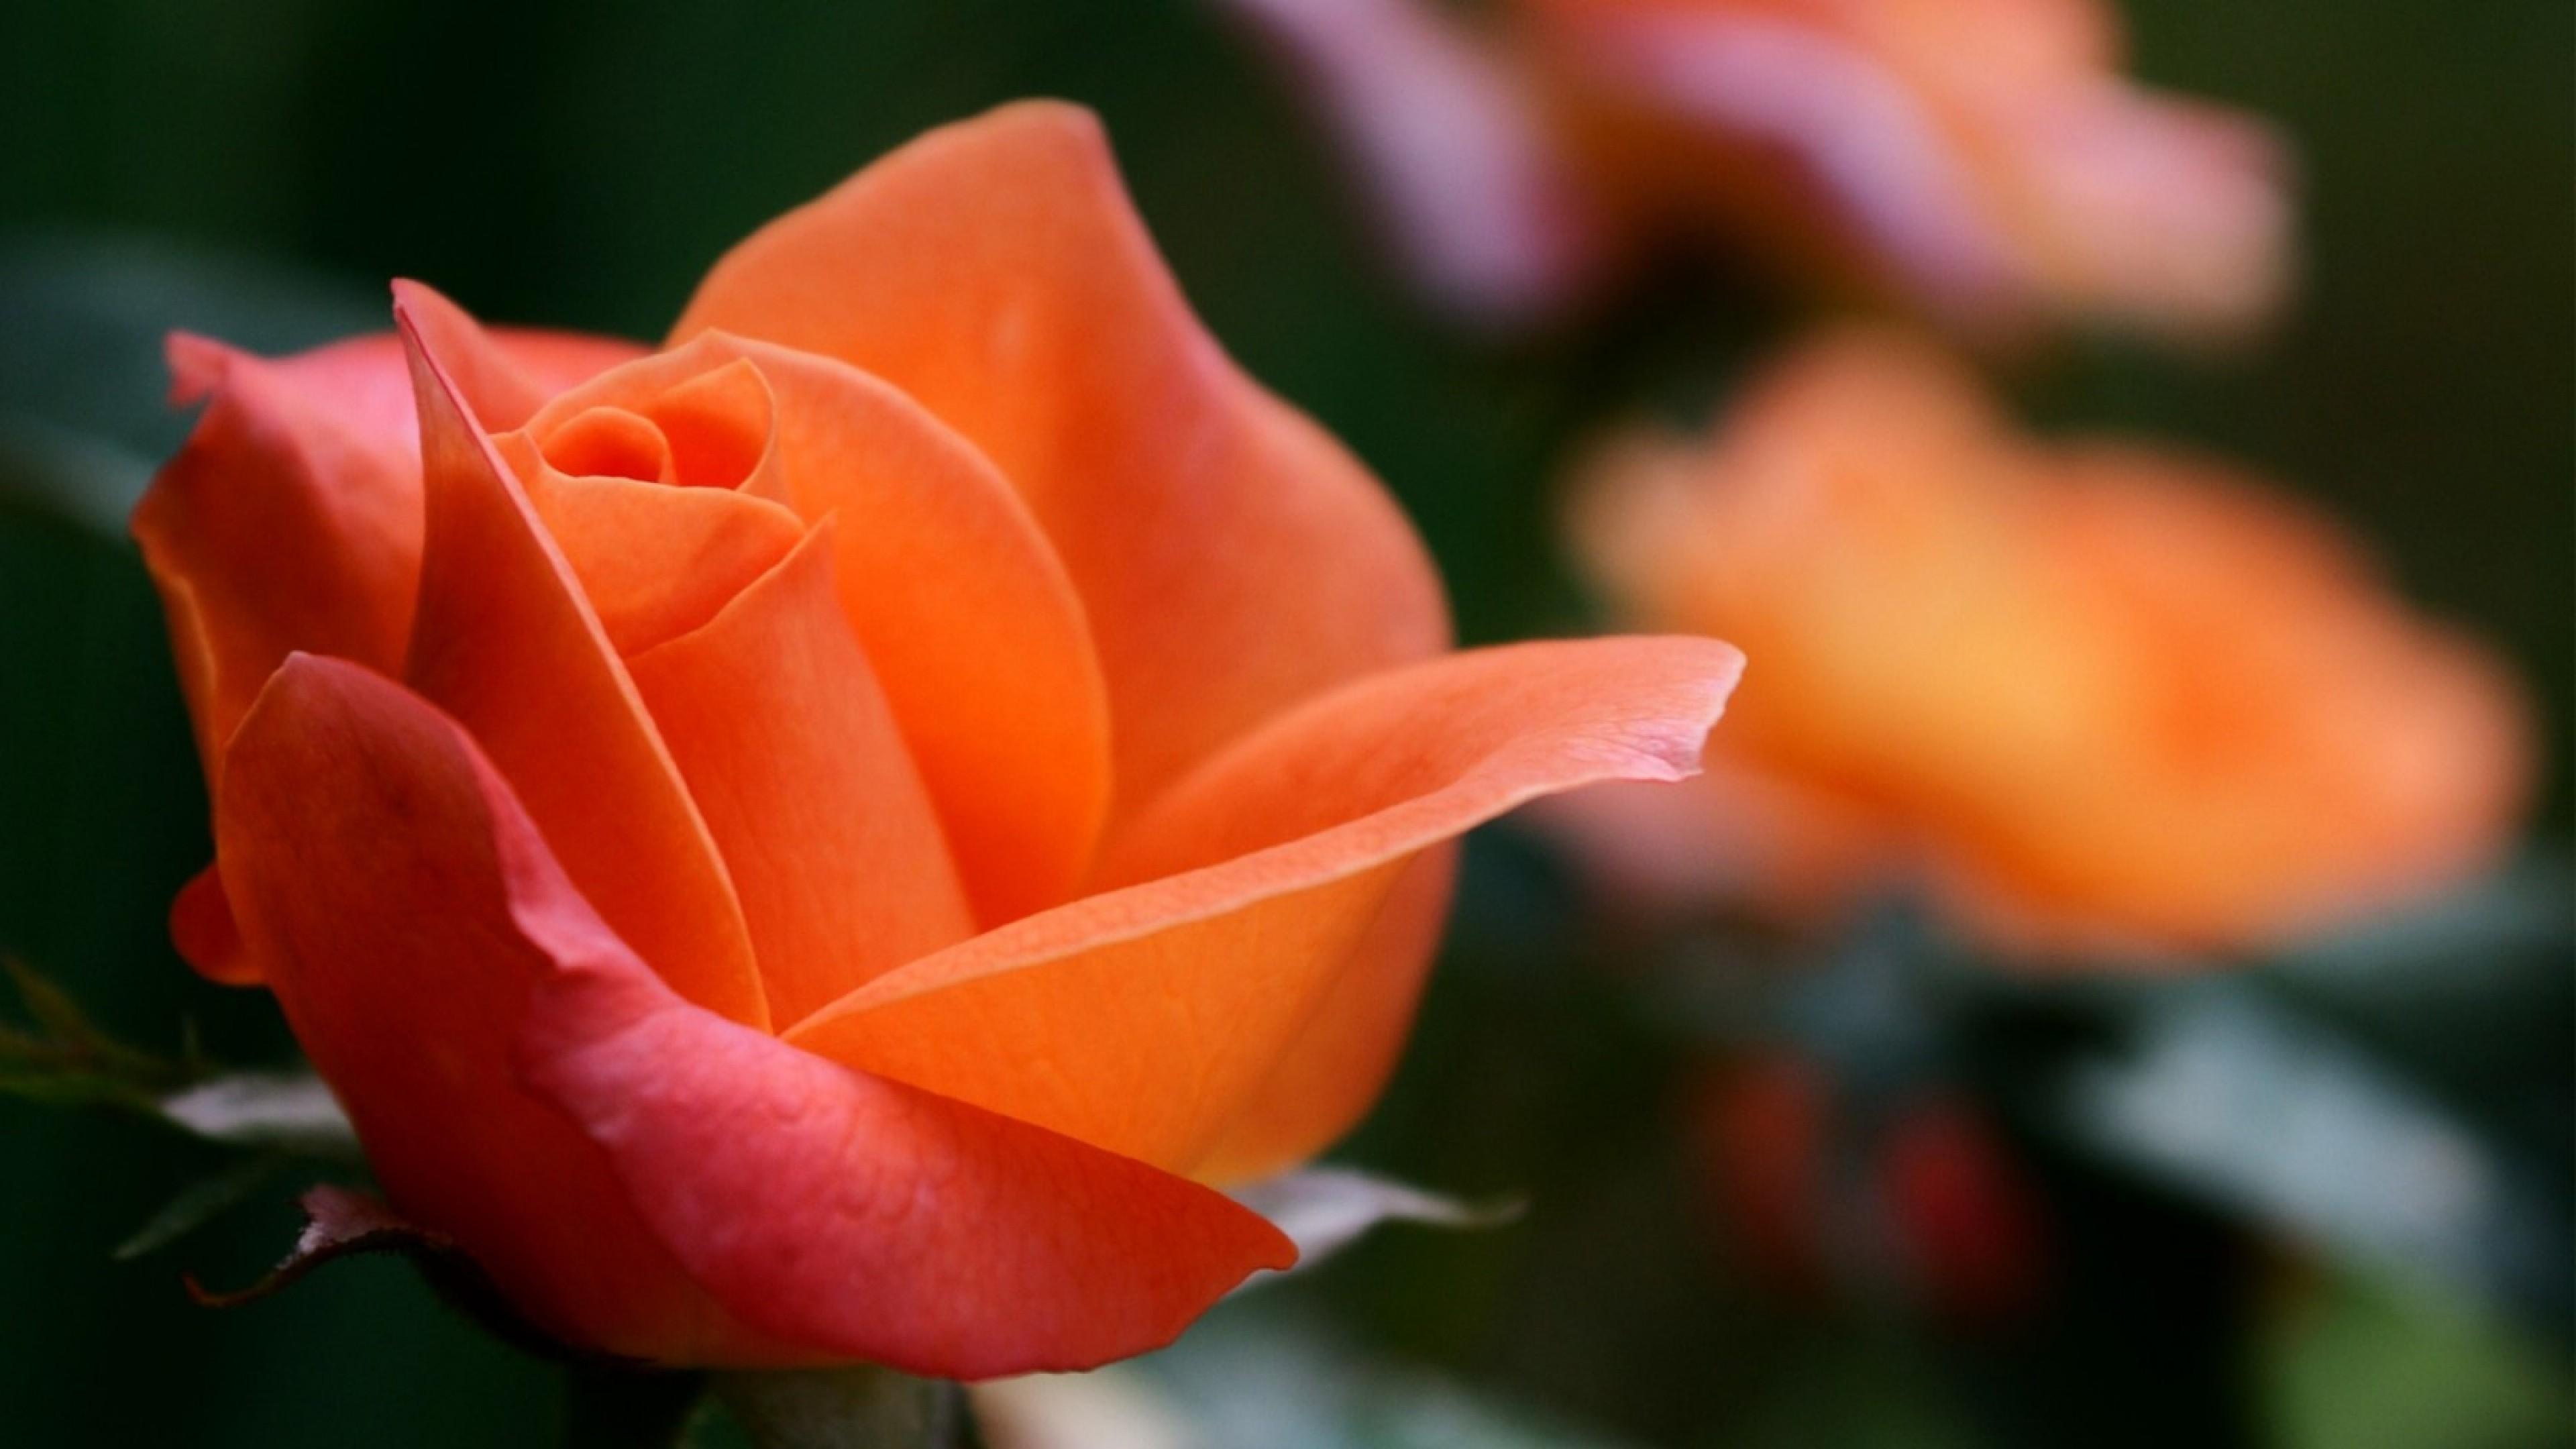 Free photo orange rose pedals plant pretty non commercial orange rose mightylinksfo